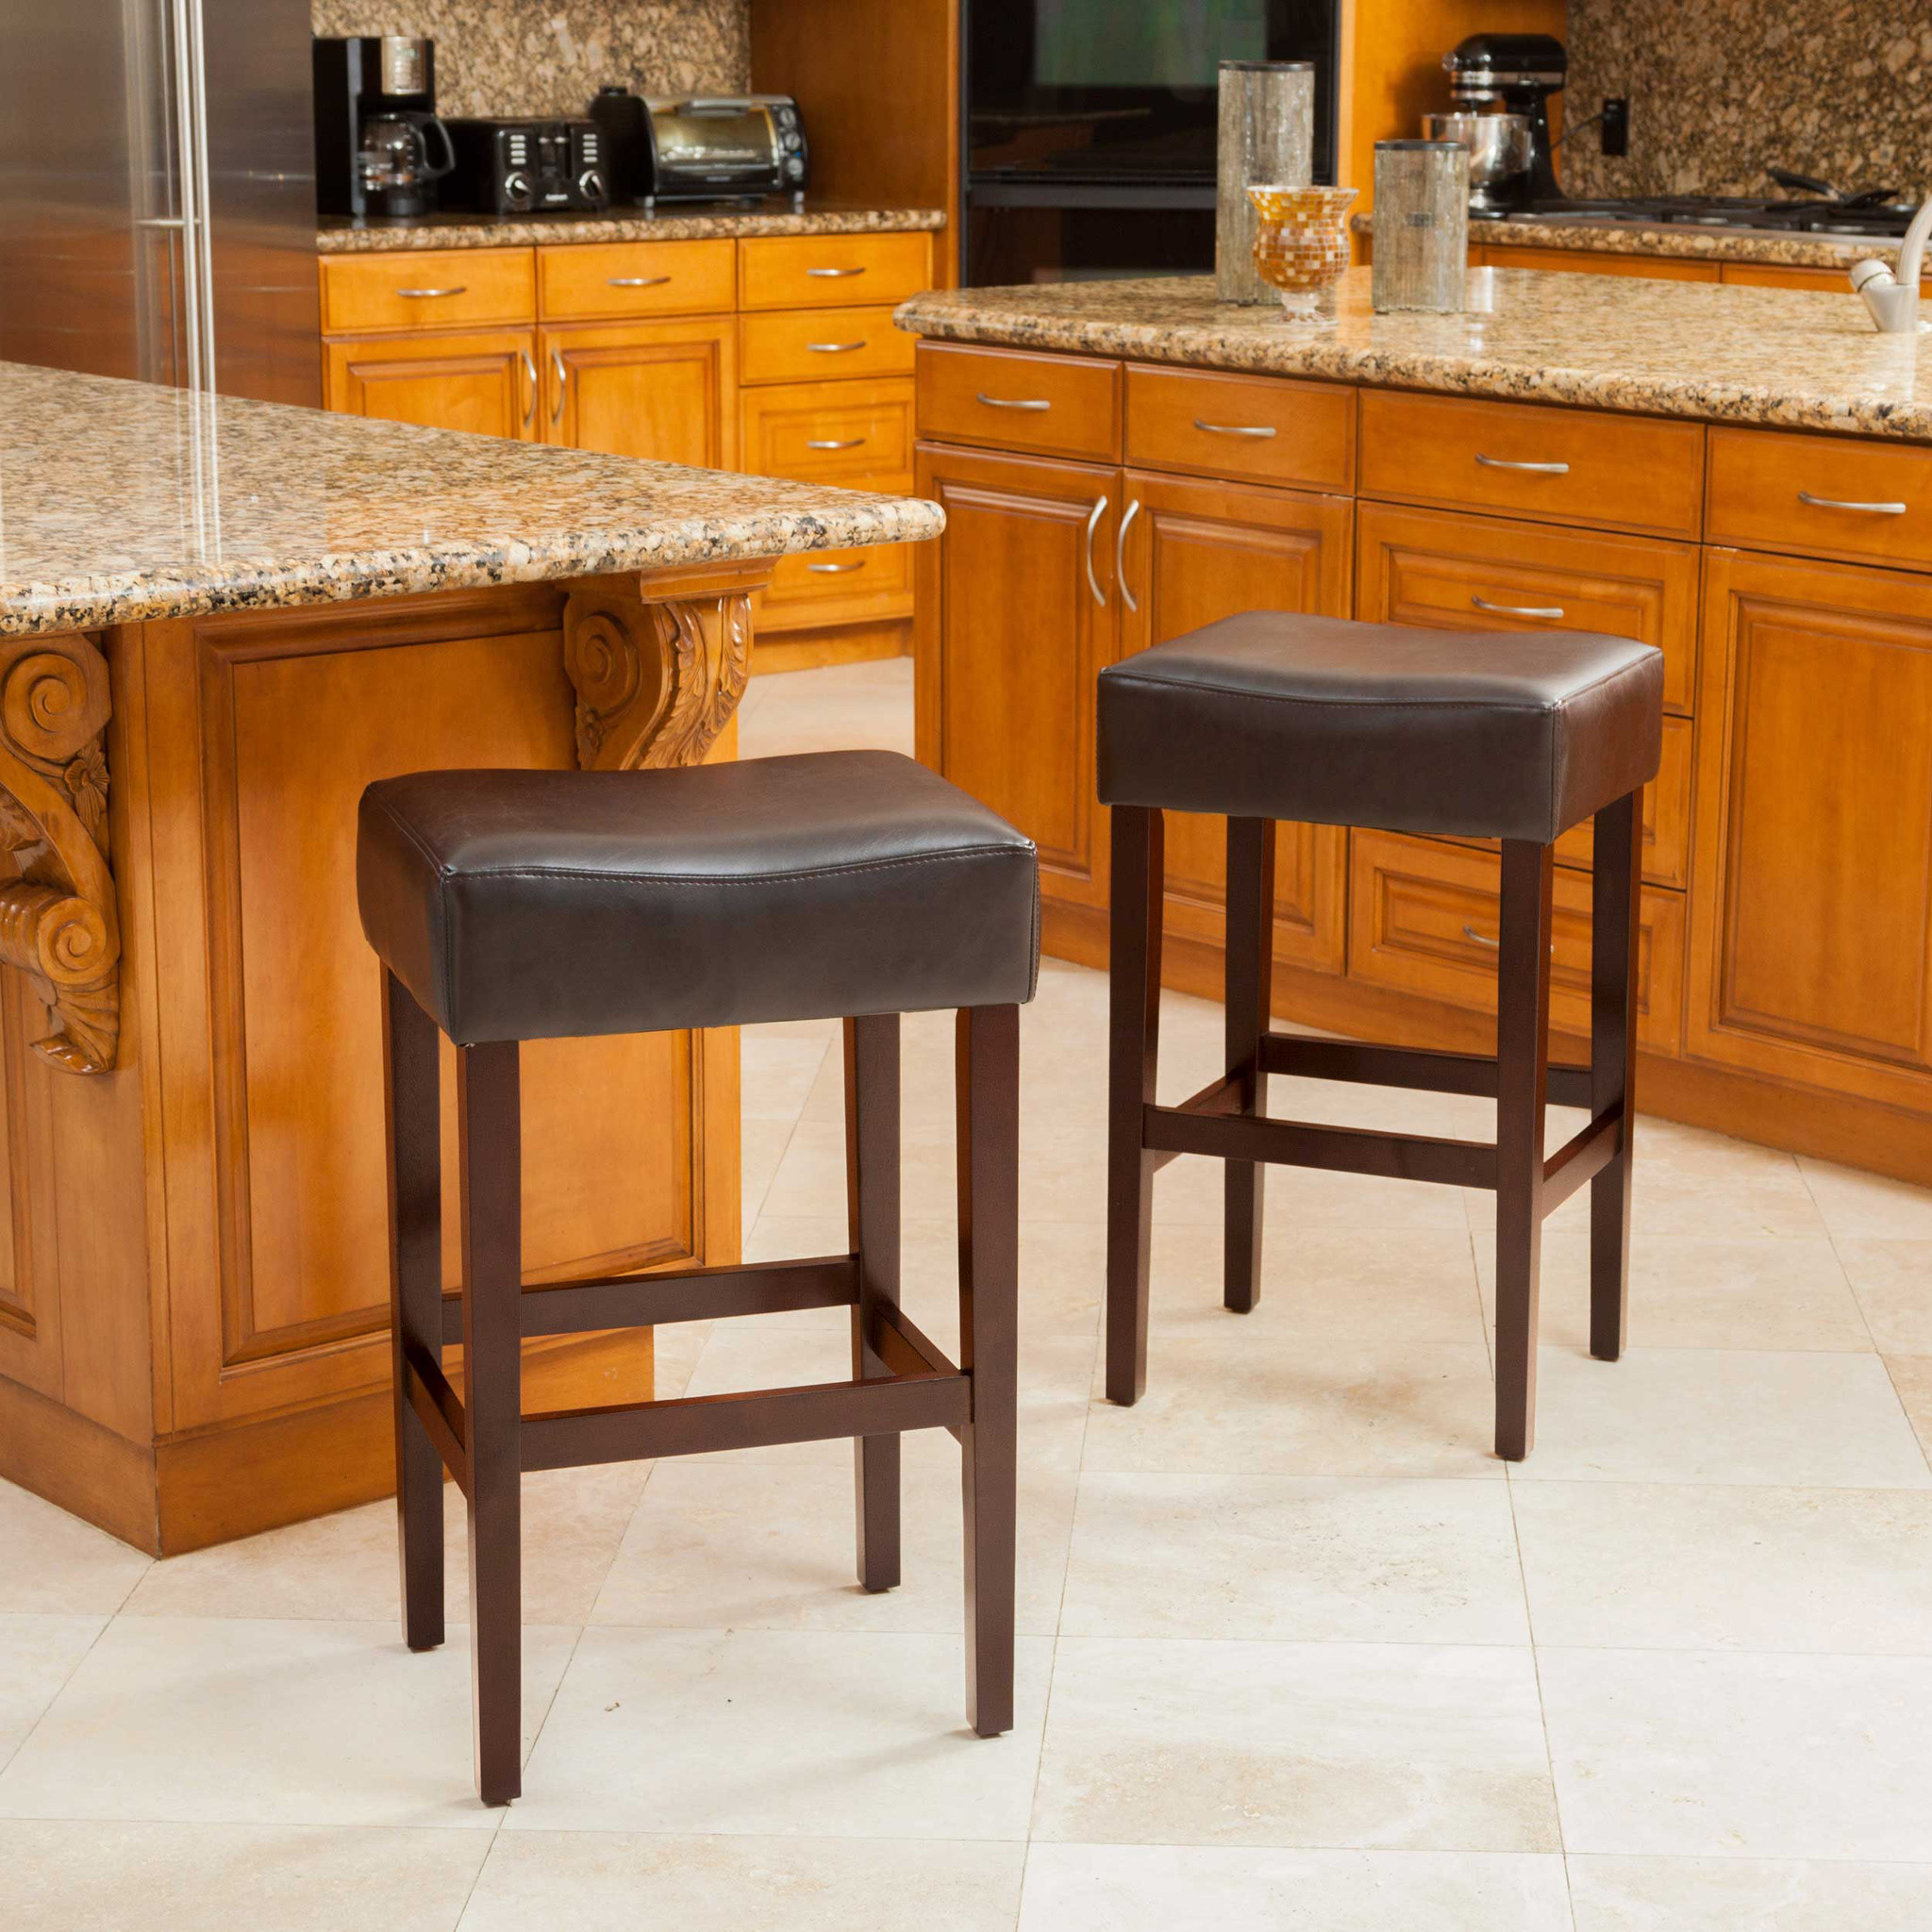 Roby Brown Leather Backless Bar Stools (Set of 2)